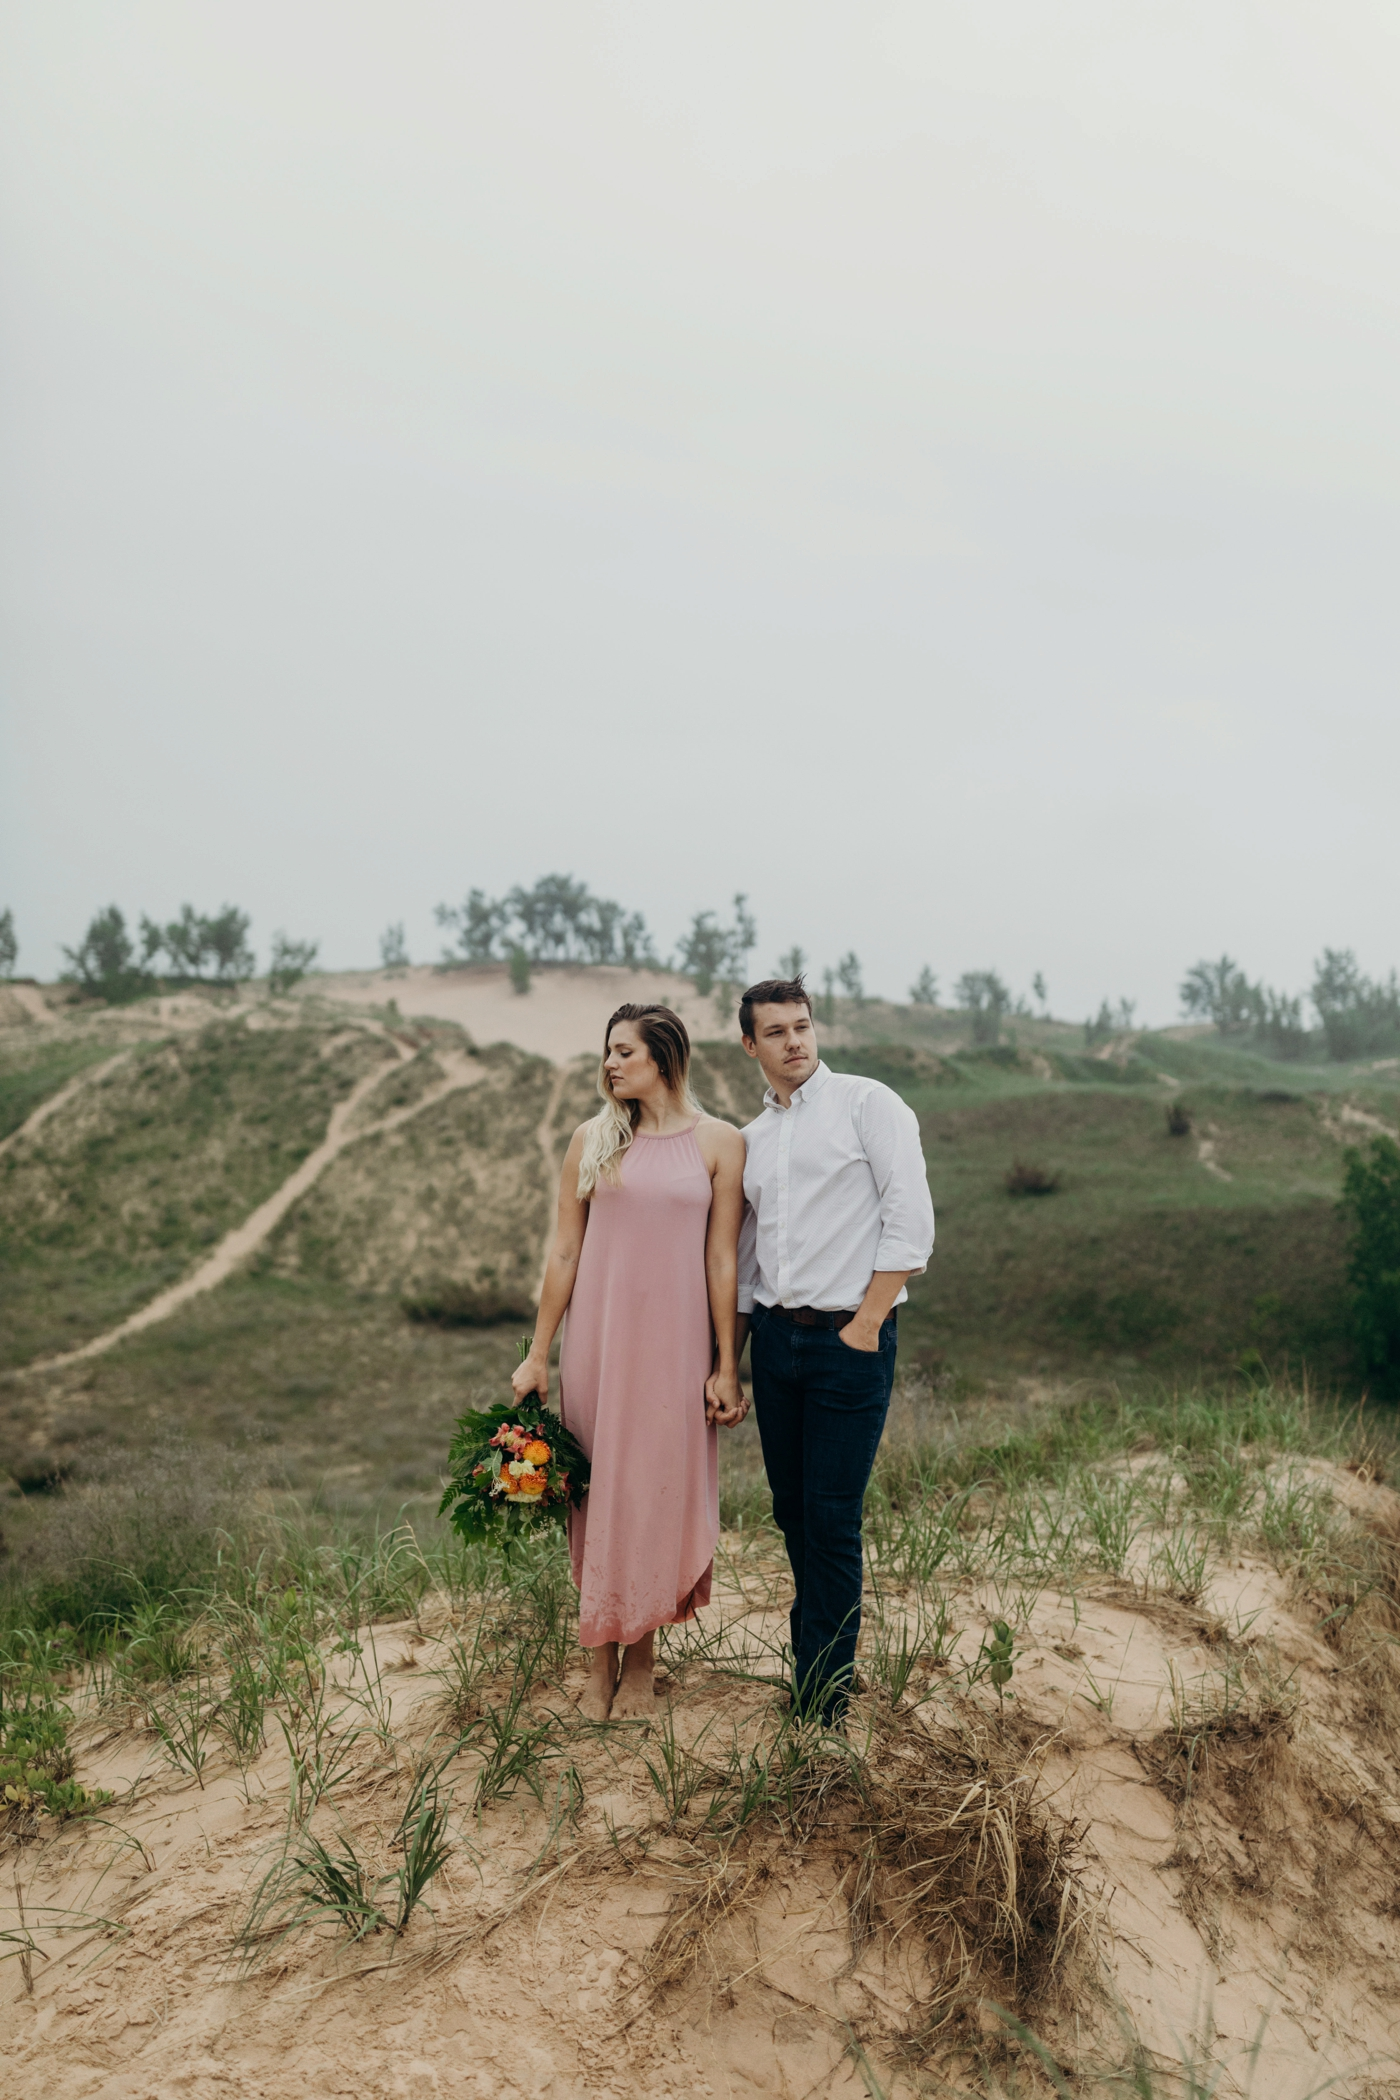 Sleeping_Bear_Dunes_Couples_Adventure_Session_Adventure_Wedding_Photographer_Hiking_with_Heels_Brett+Emily-32.jpg